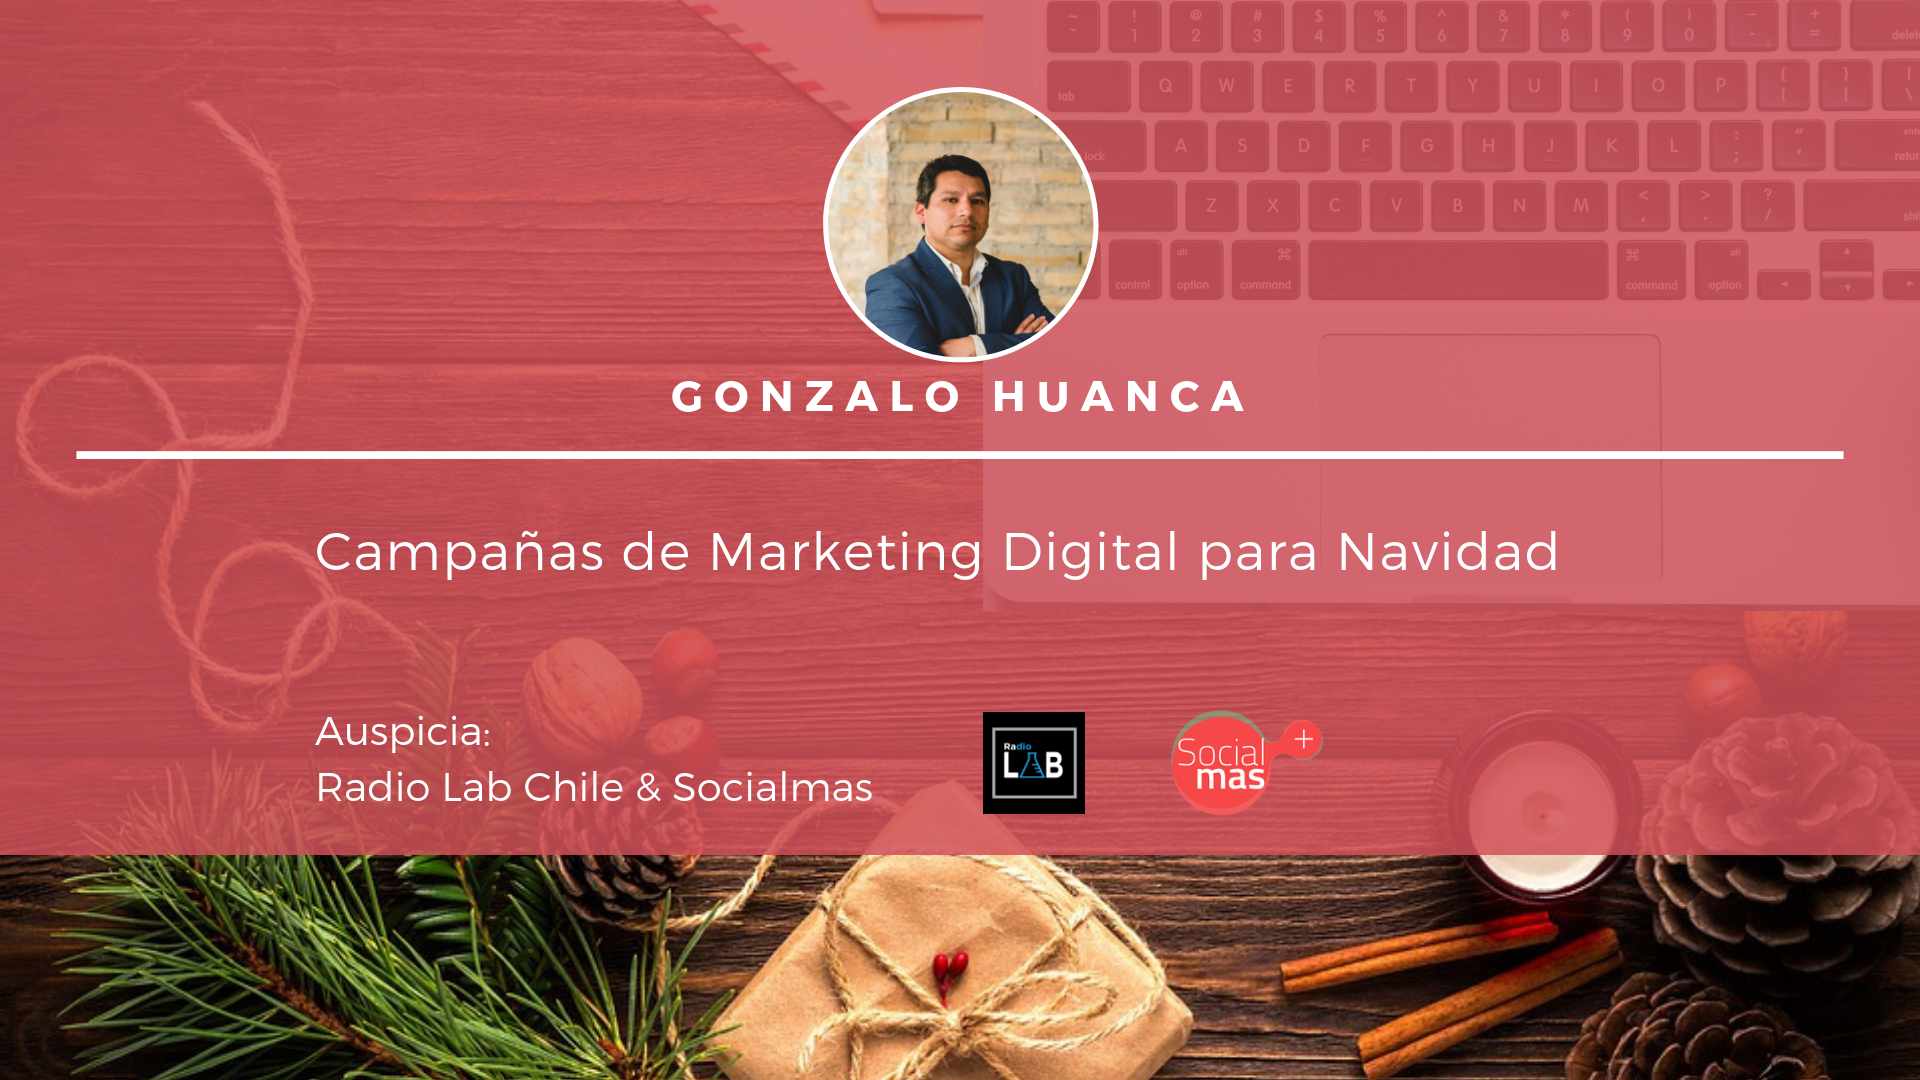 Campañas de Marketing Digital, Gonzalo Huanca